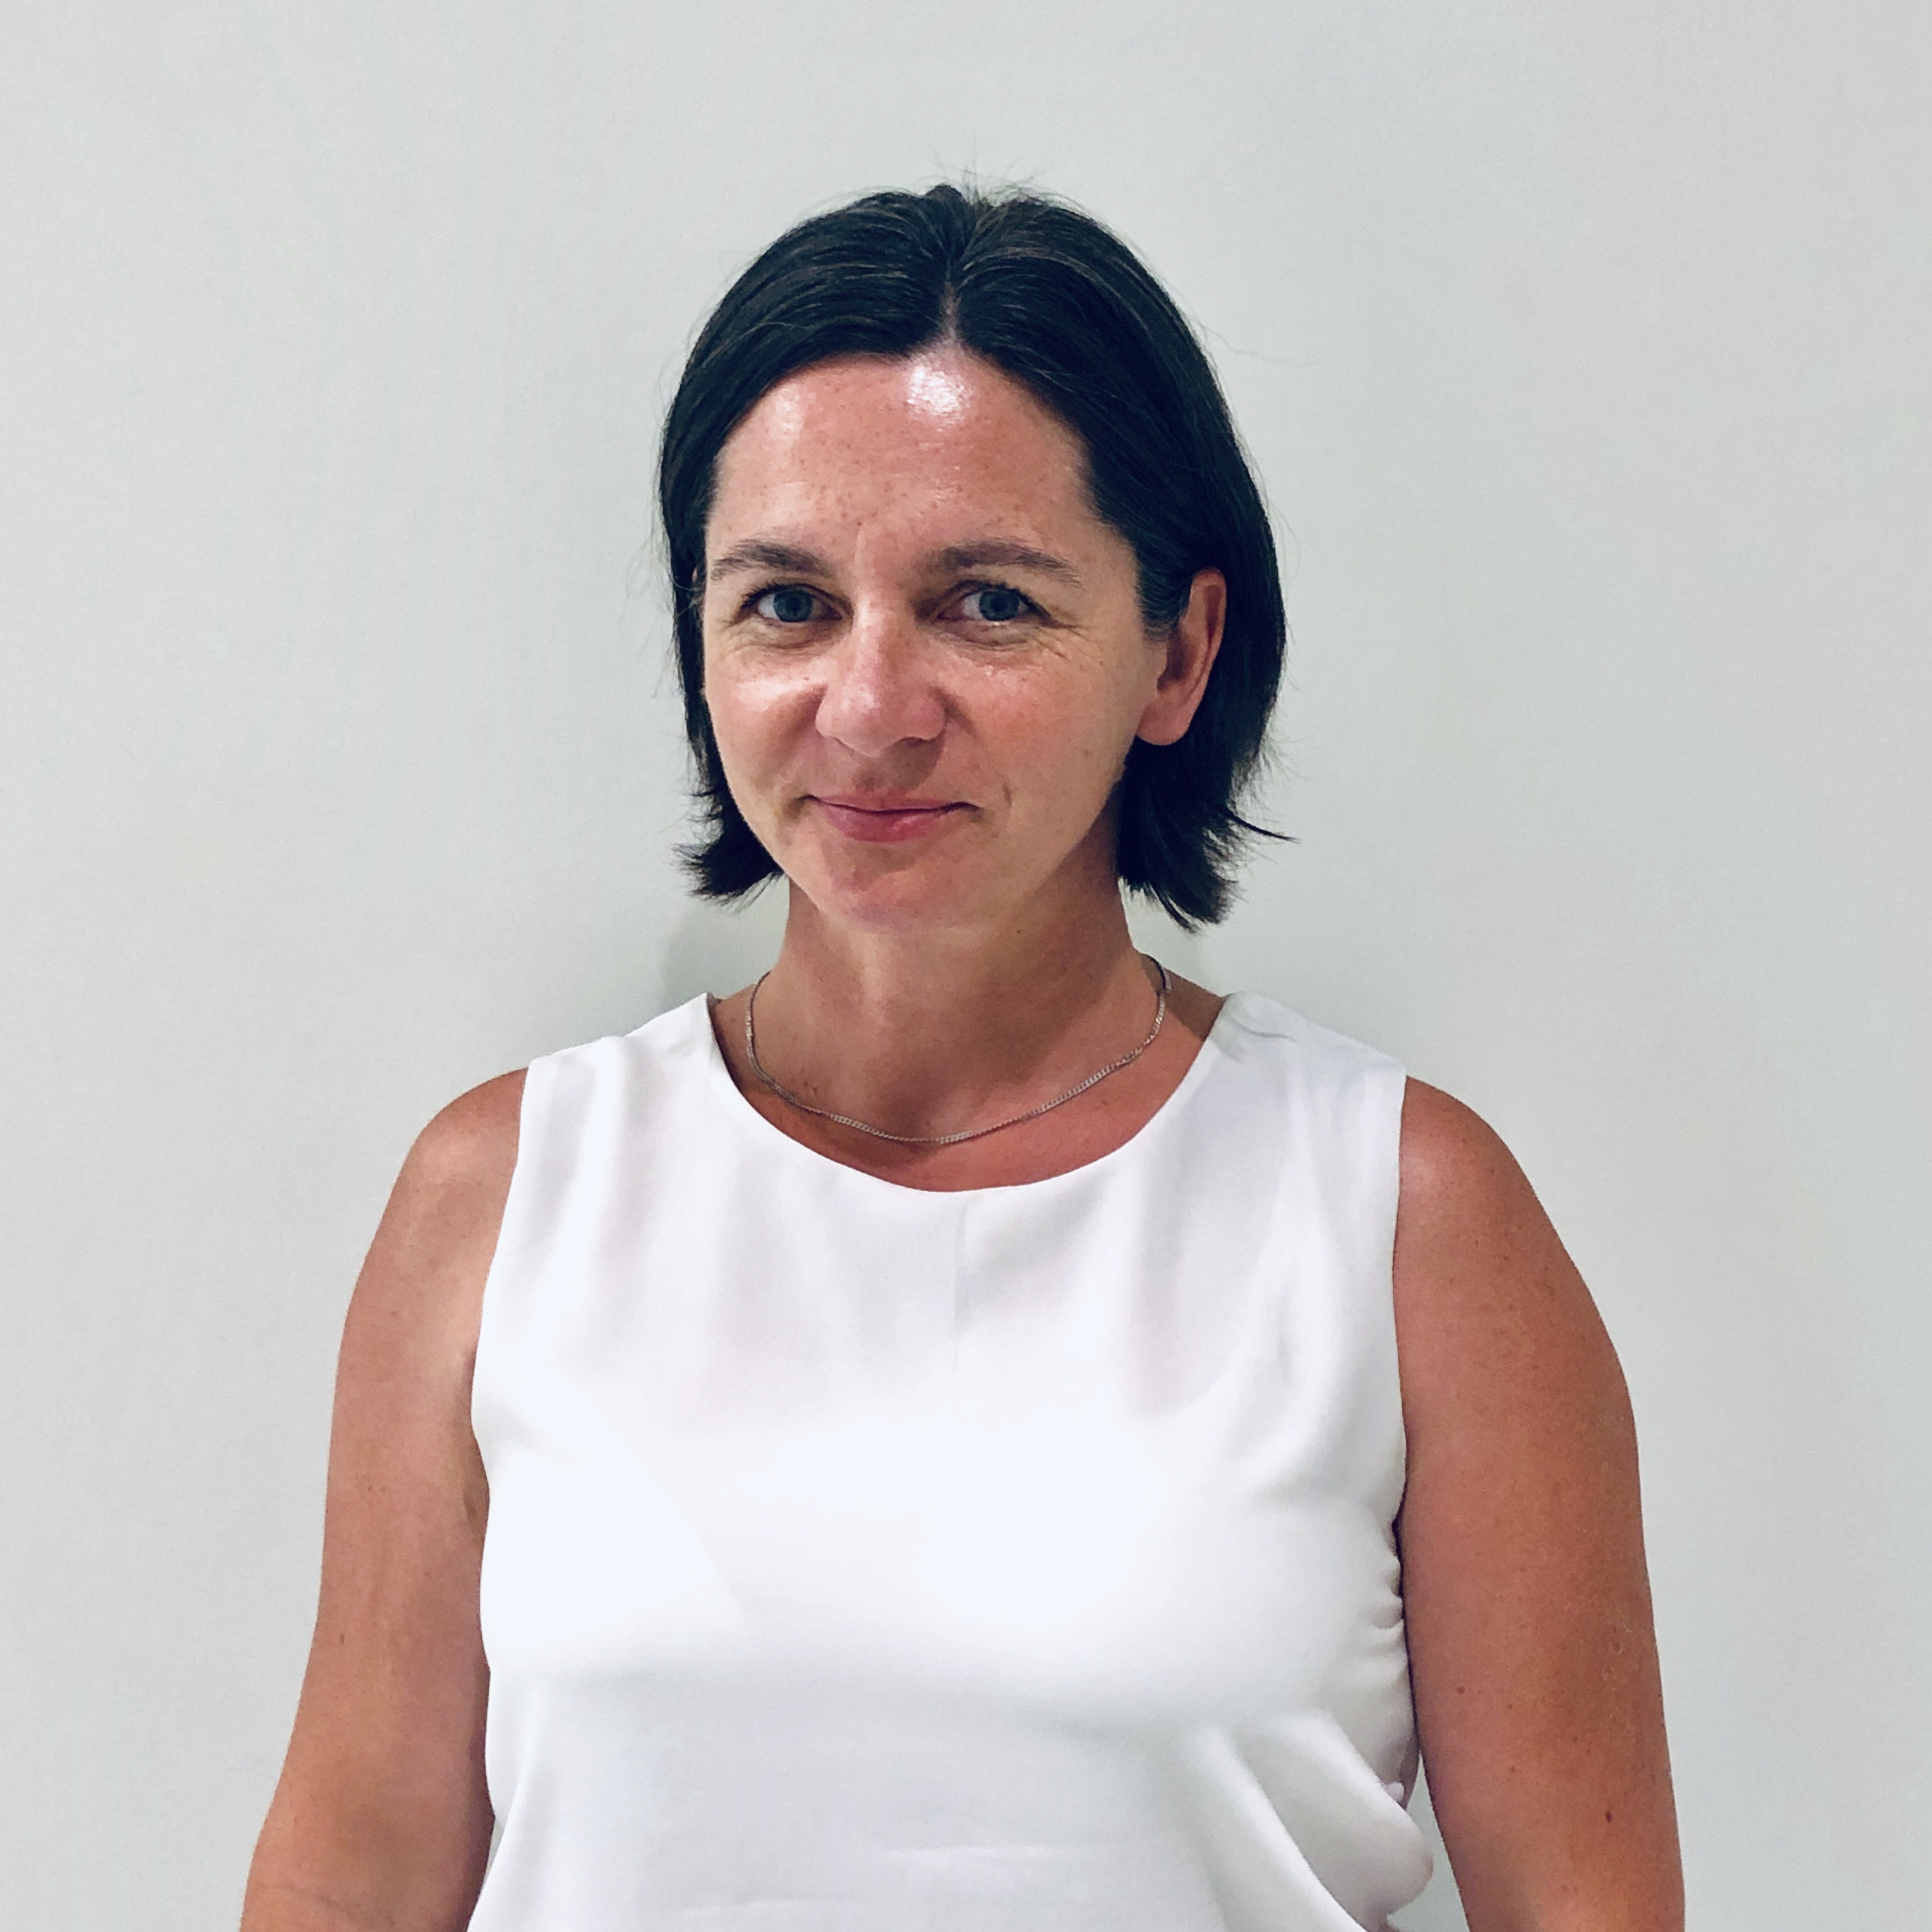 CARRIE VIOLA, Registered Physiotherapist